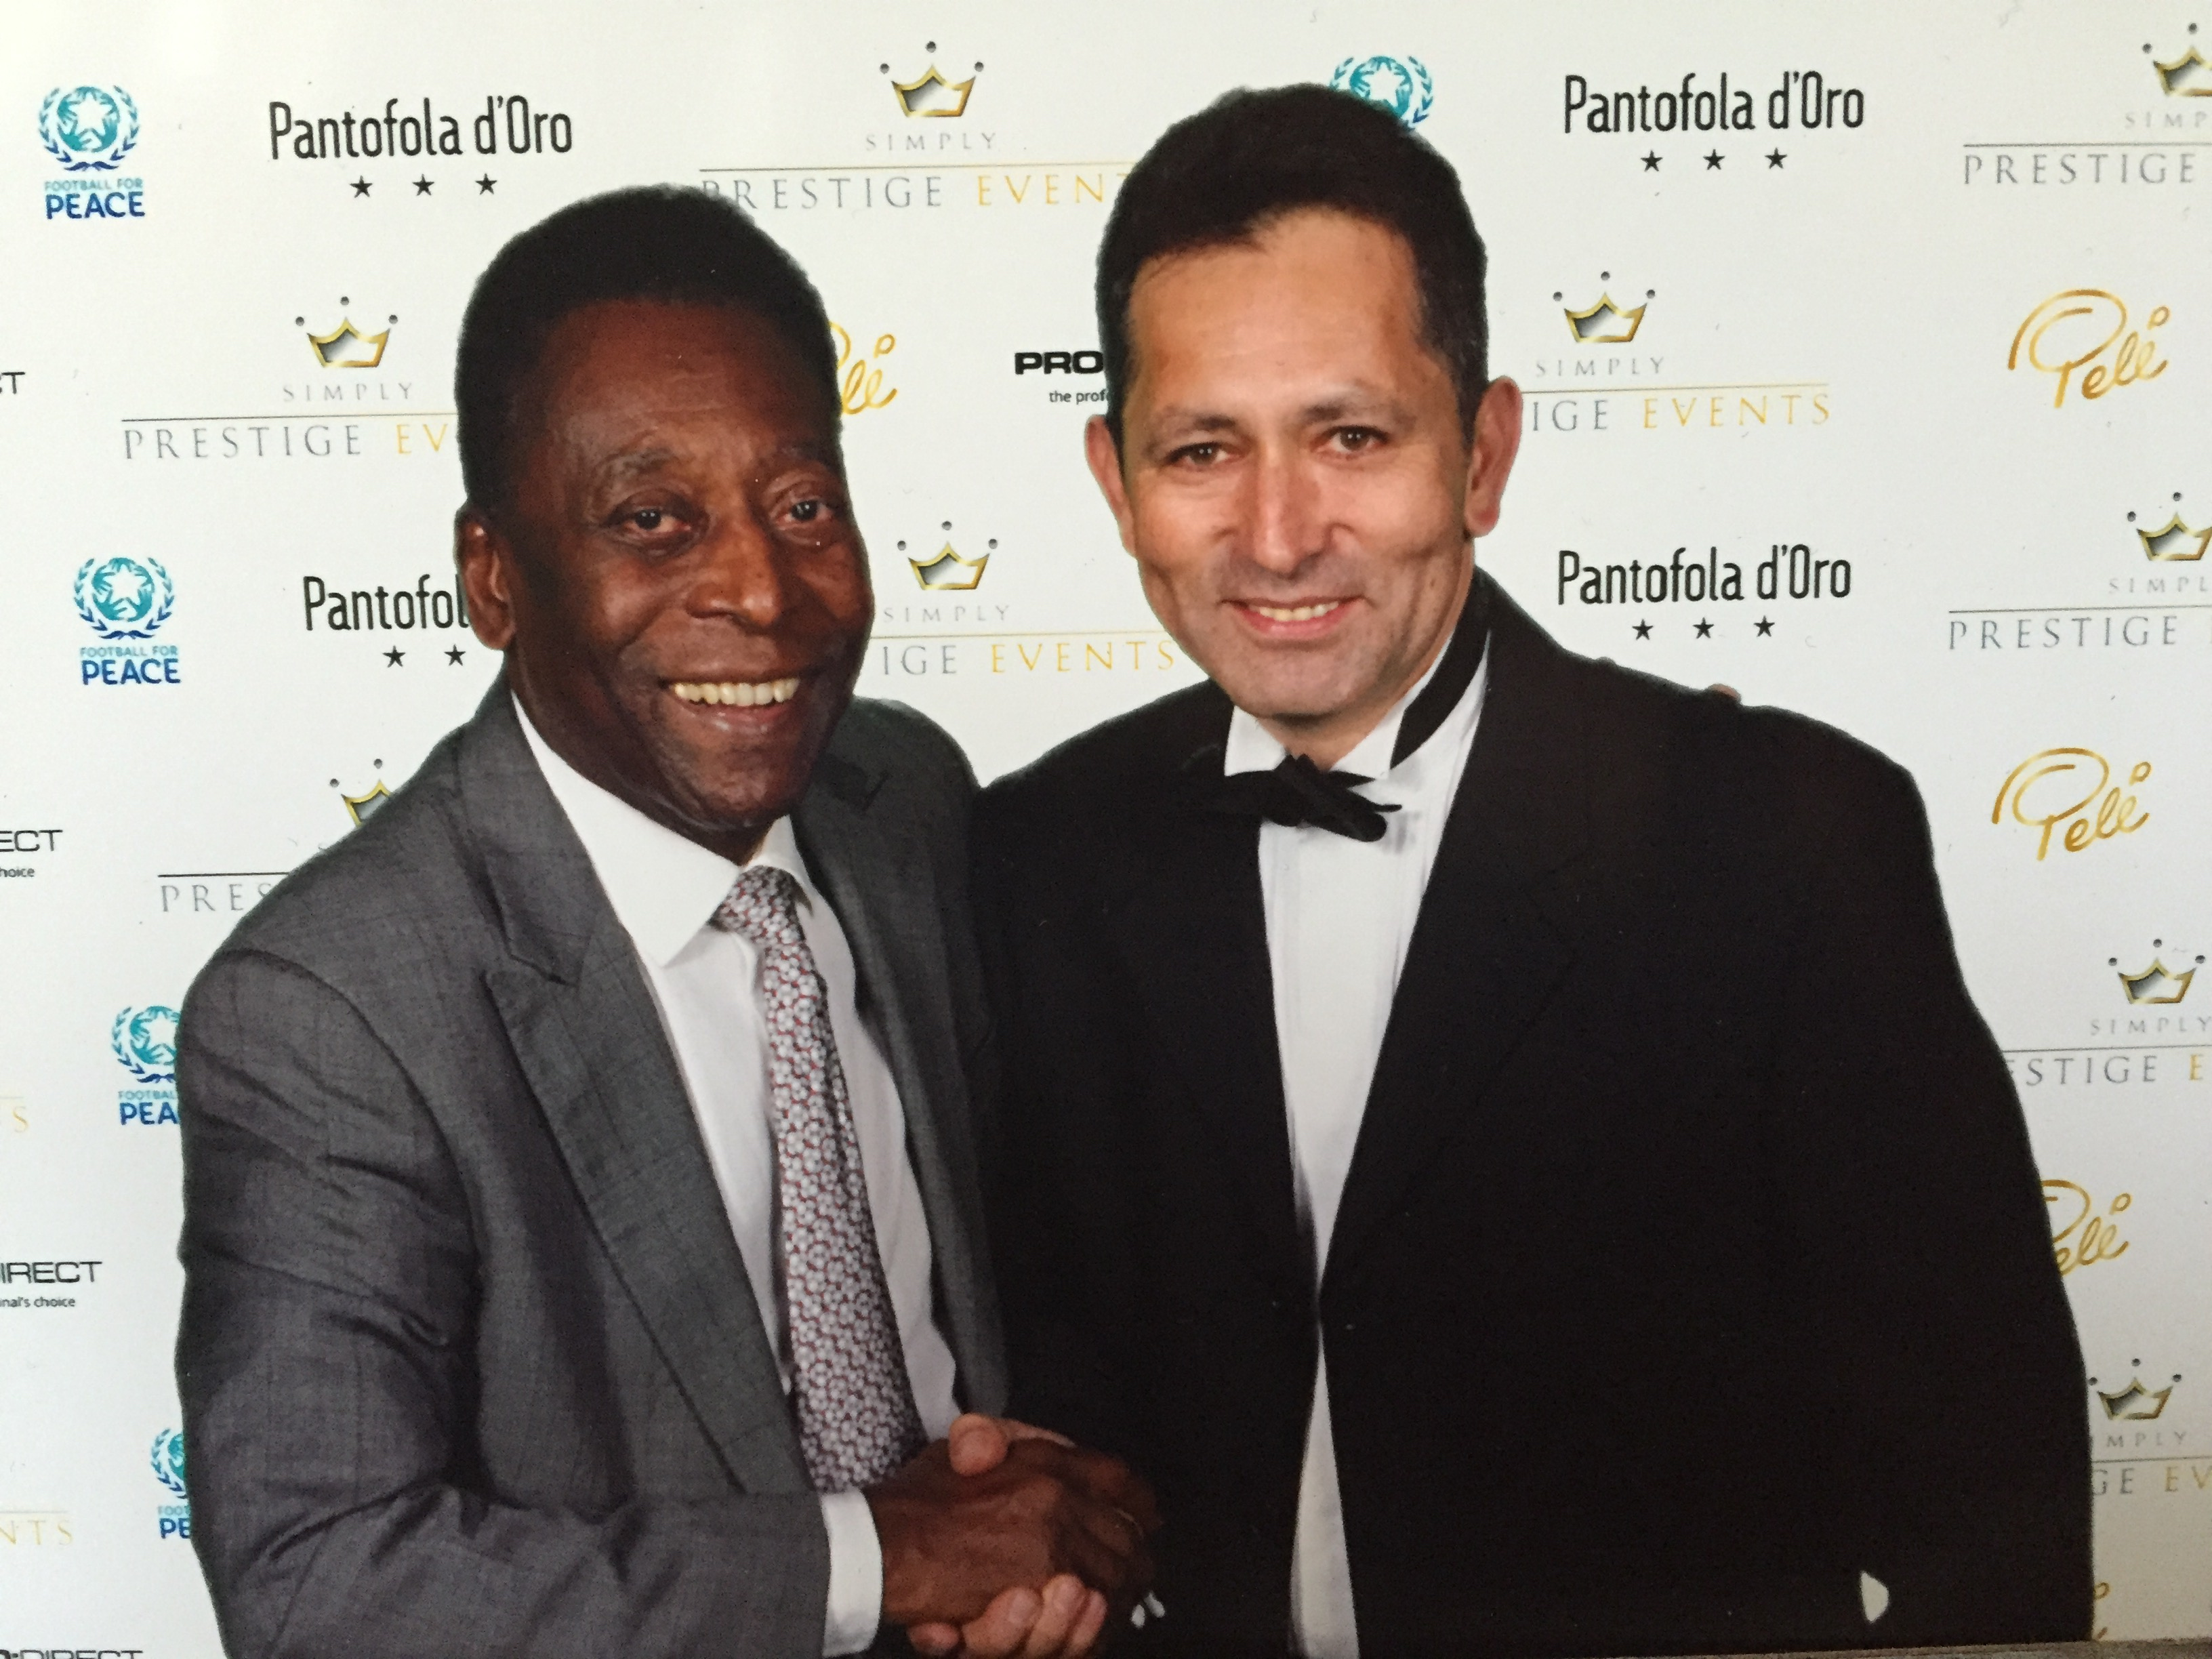 AN EVENING WITH PELE